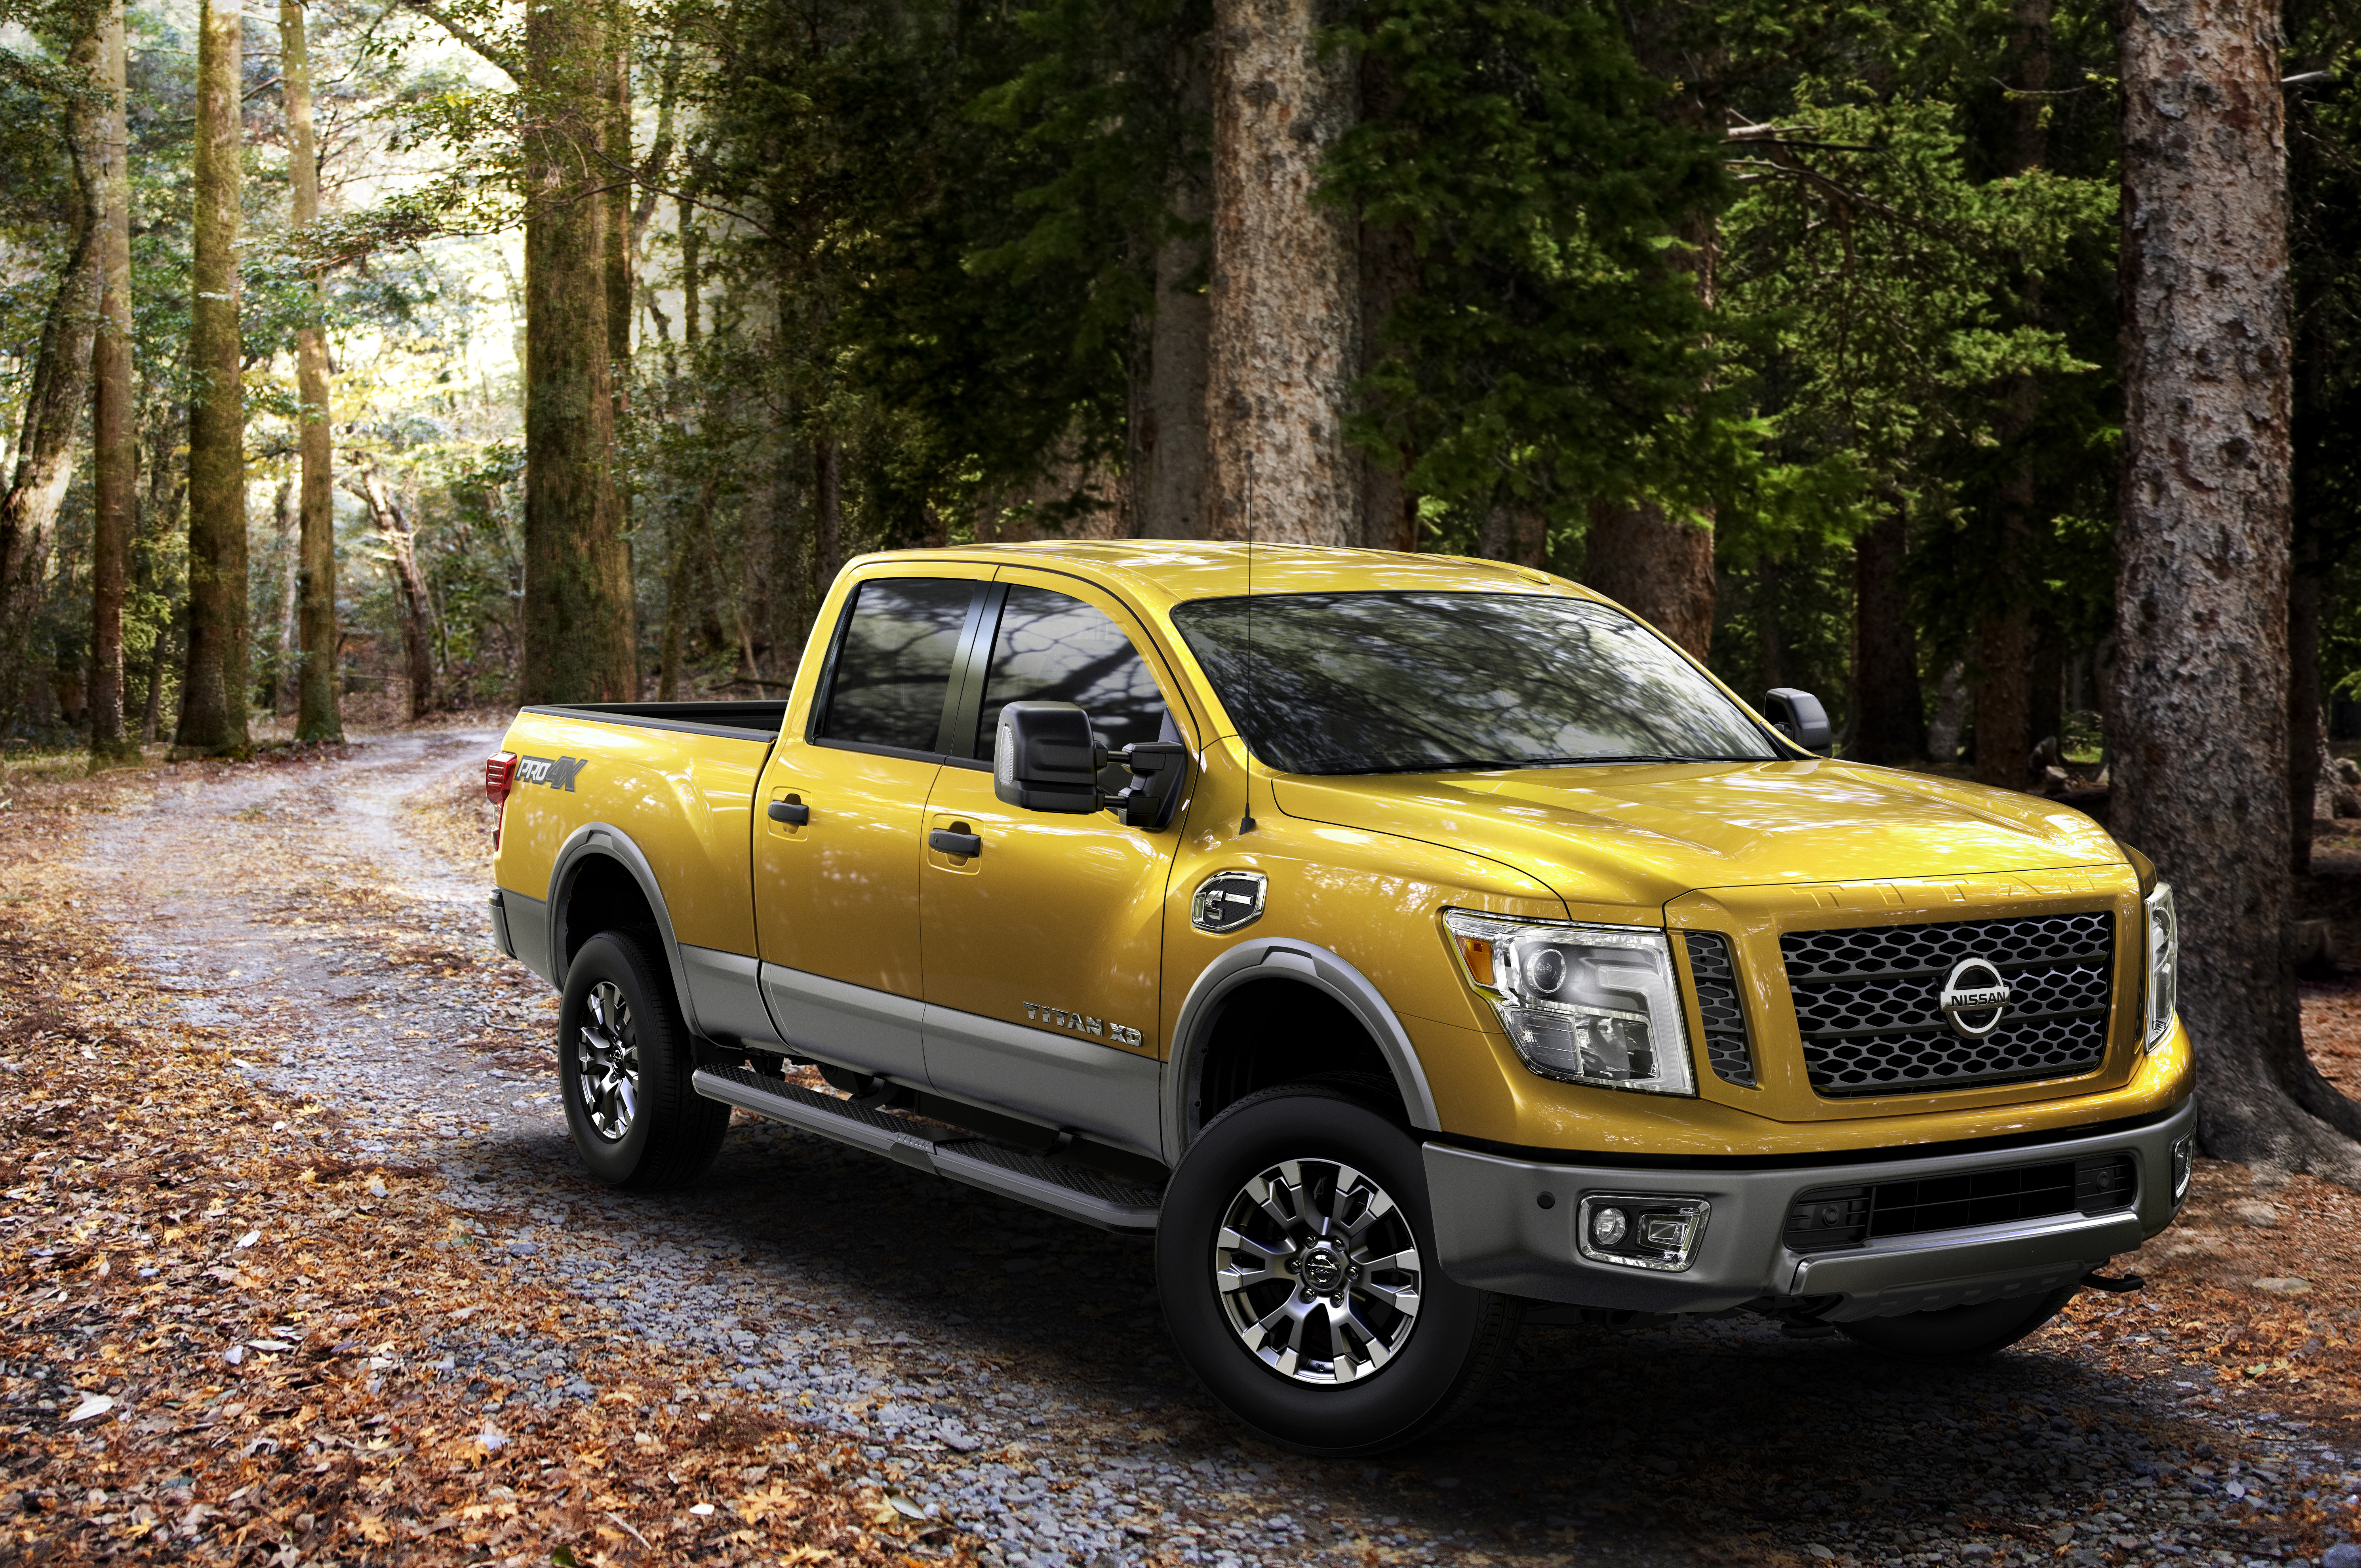 Toyota Diesel Truck >> New Nissan Titan to feature Cummins power - Truck News